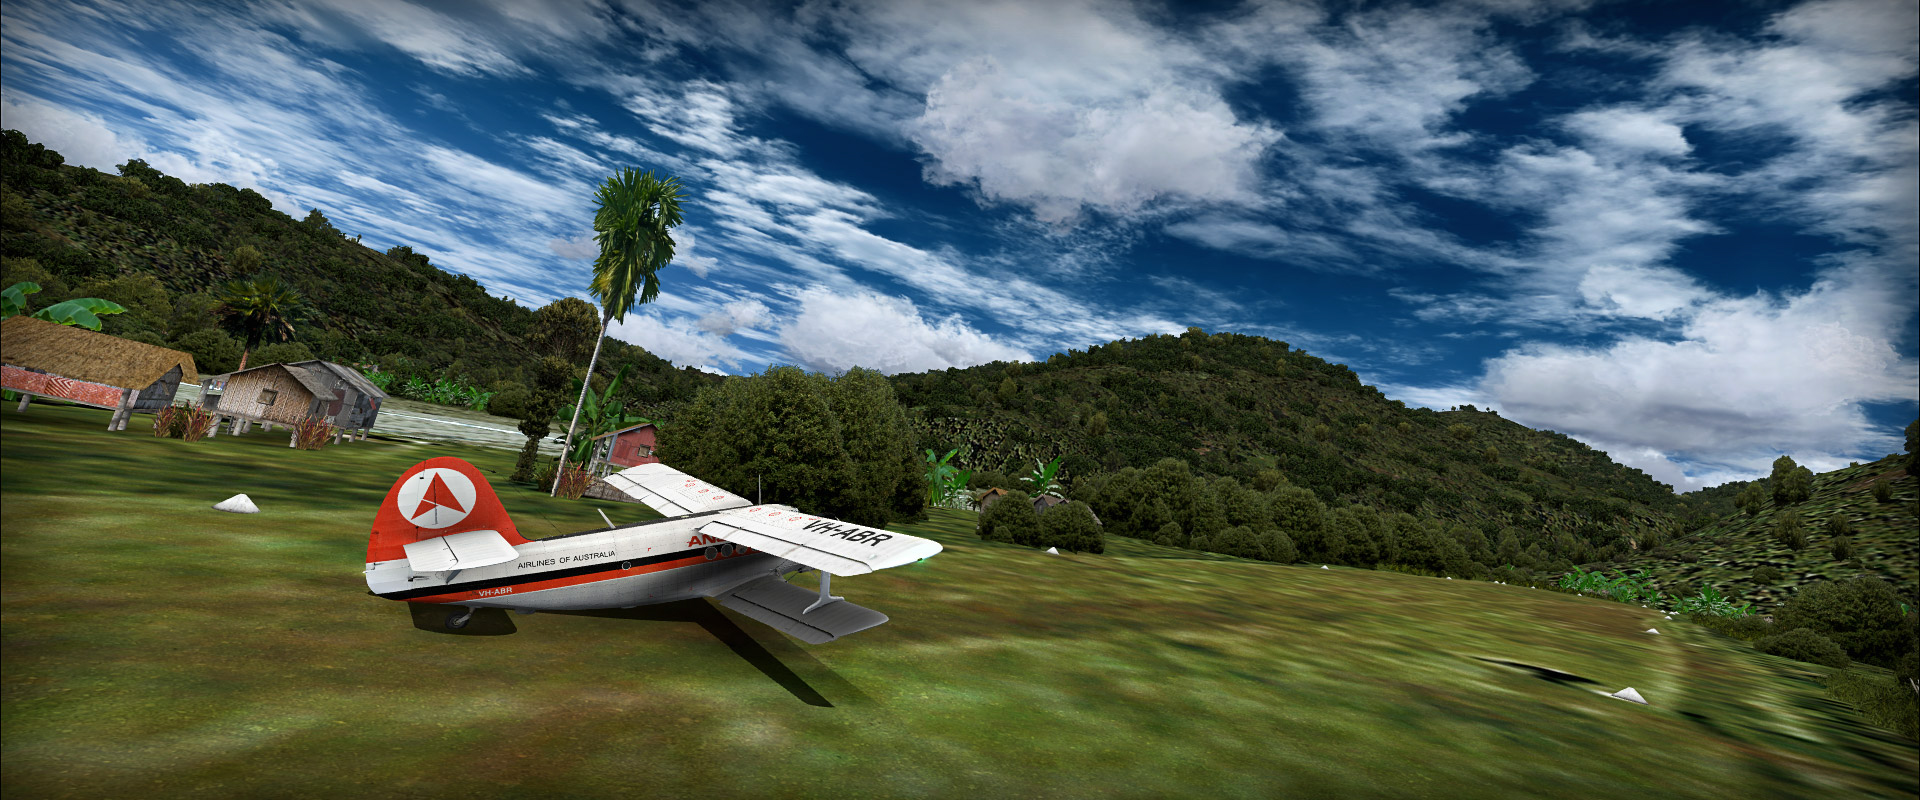 PNG #2 – FSX/P3D planes for PNG flying • C-Aviation